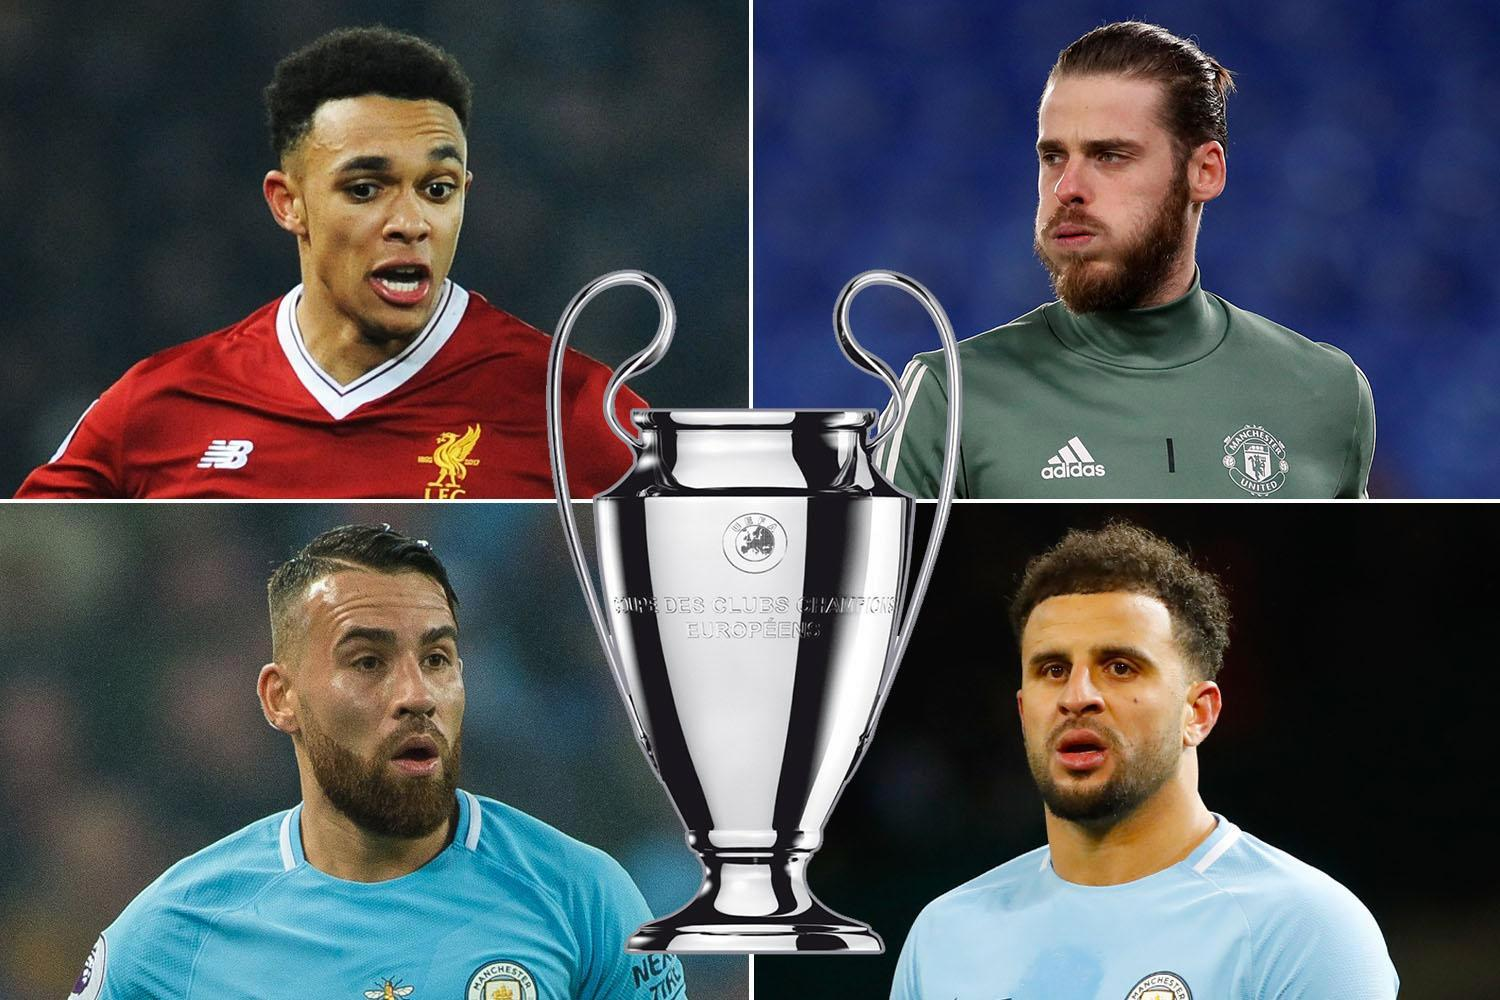 Liverpool youngster Trent Alexander-Arnold is the Champions League's top defender this season, as Jurgen Klopp's Reds dominate the best players list